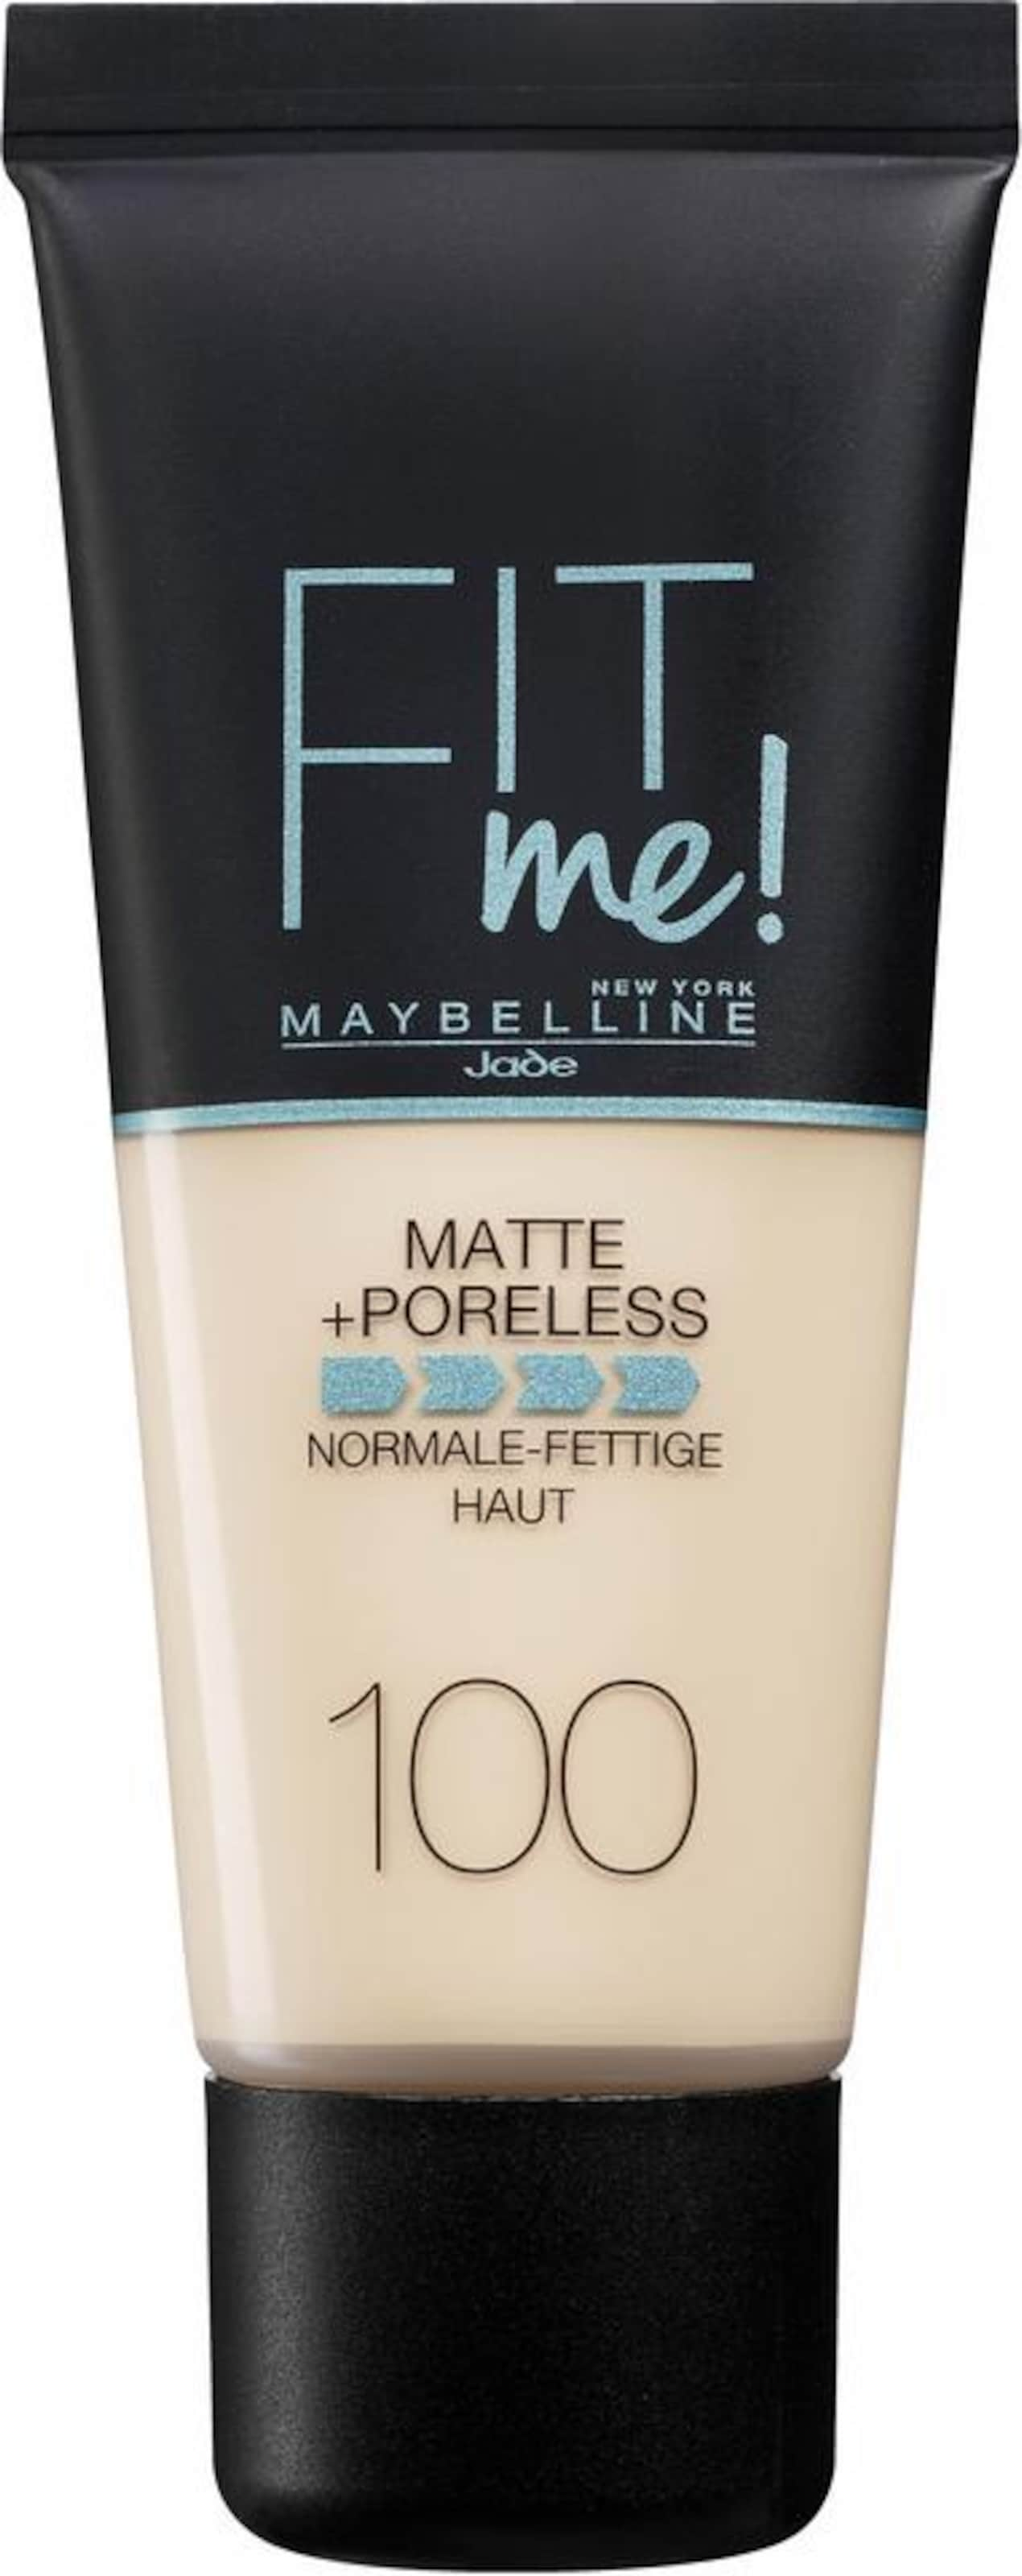 MAYBELLINE New York 'Fit me! Matte+Poreless', Make-up